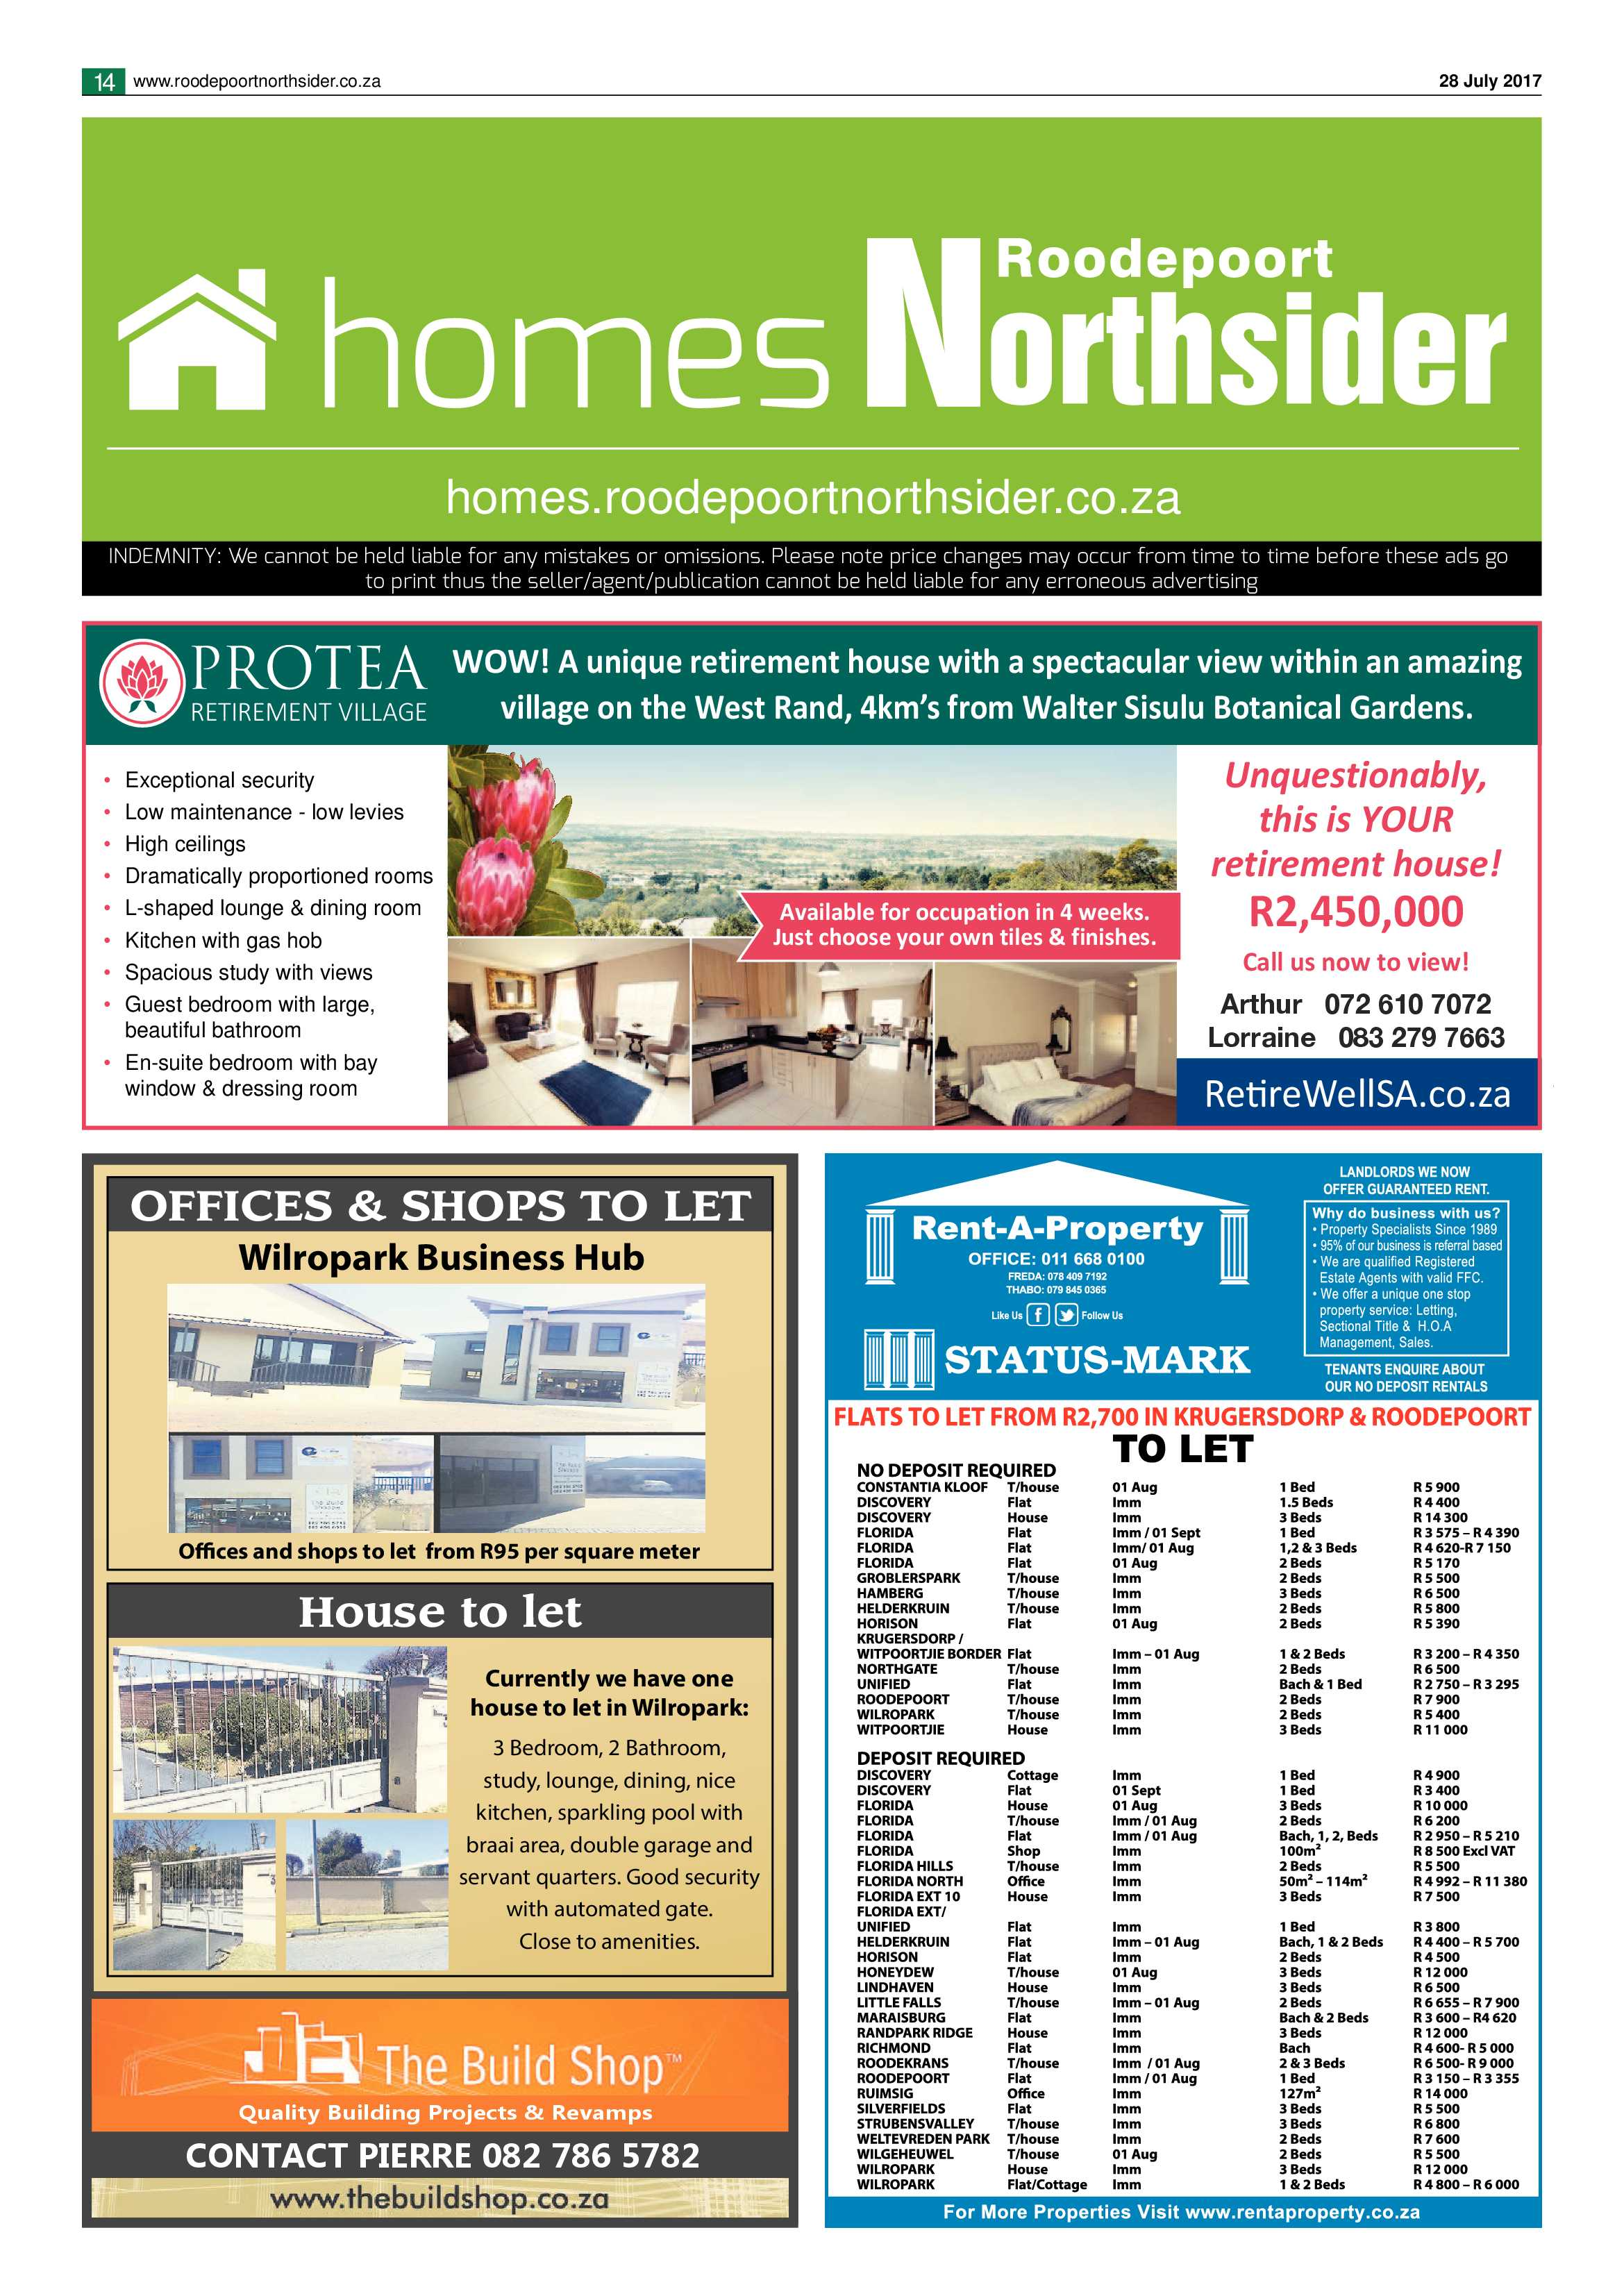 roodepoort-northsider-28-july-2017-epapers-page-14